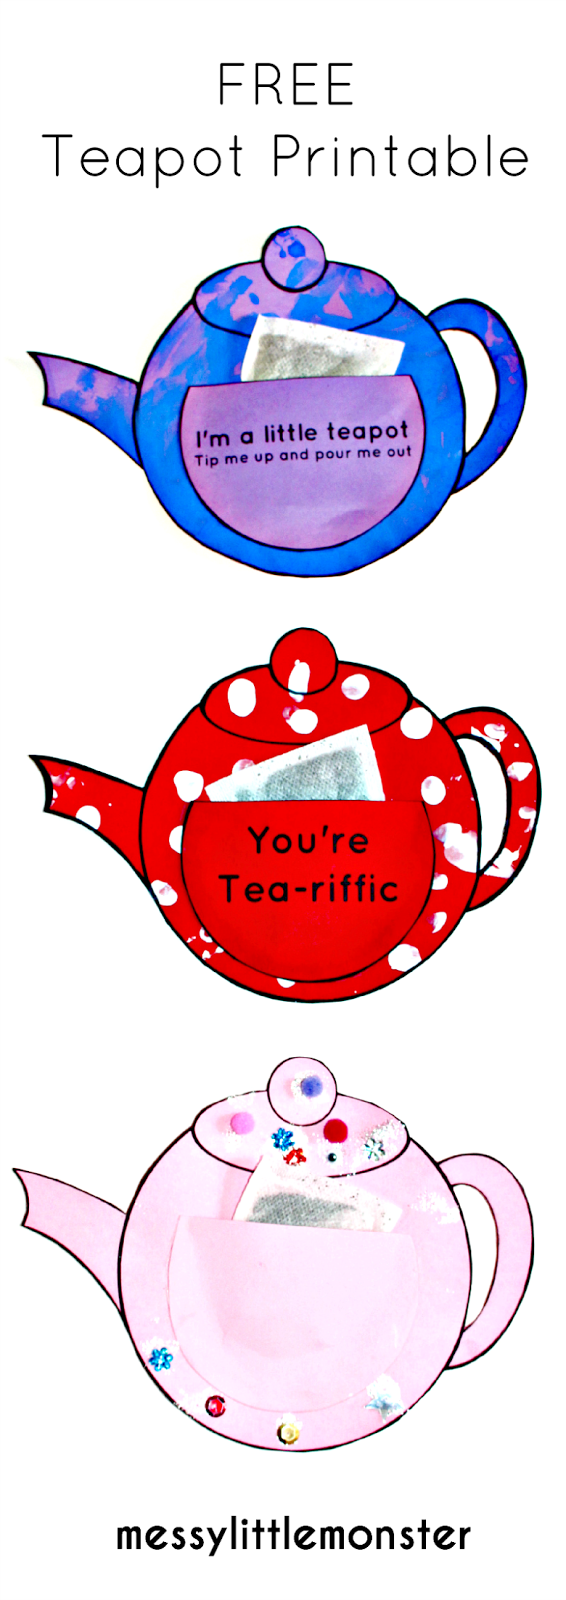 photo regarding Printable Crafts for Kids referred to as Youre Tea-riffic teapot craft - Free of charge printable teapot